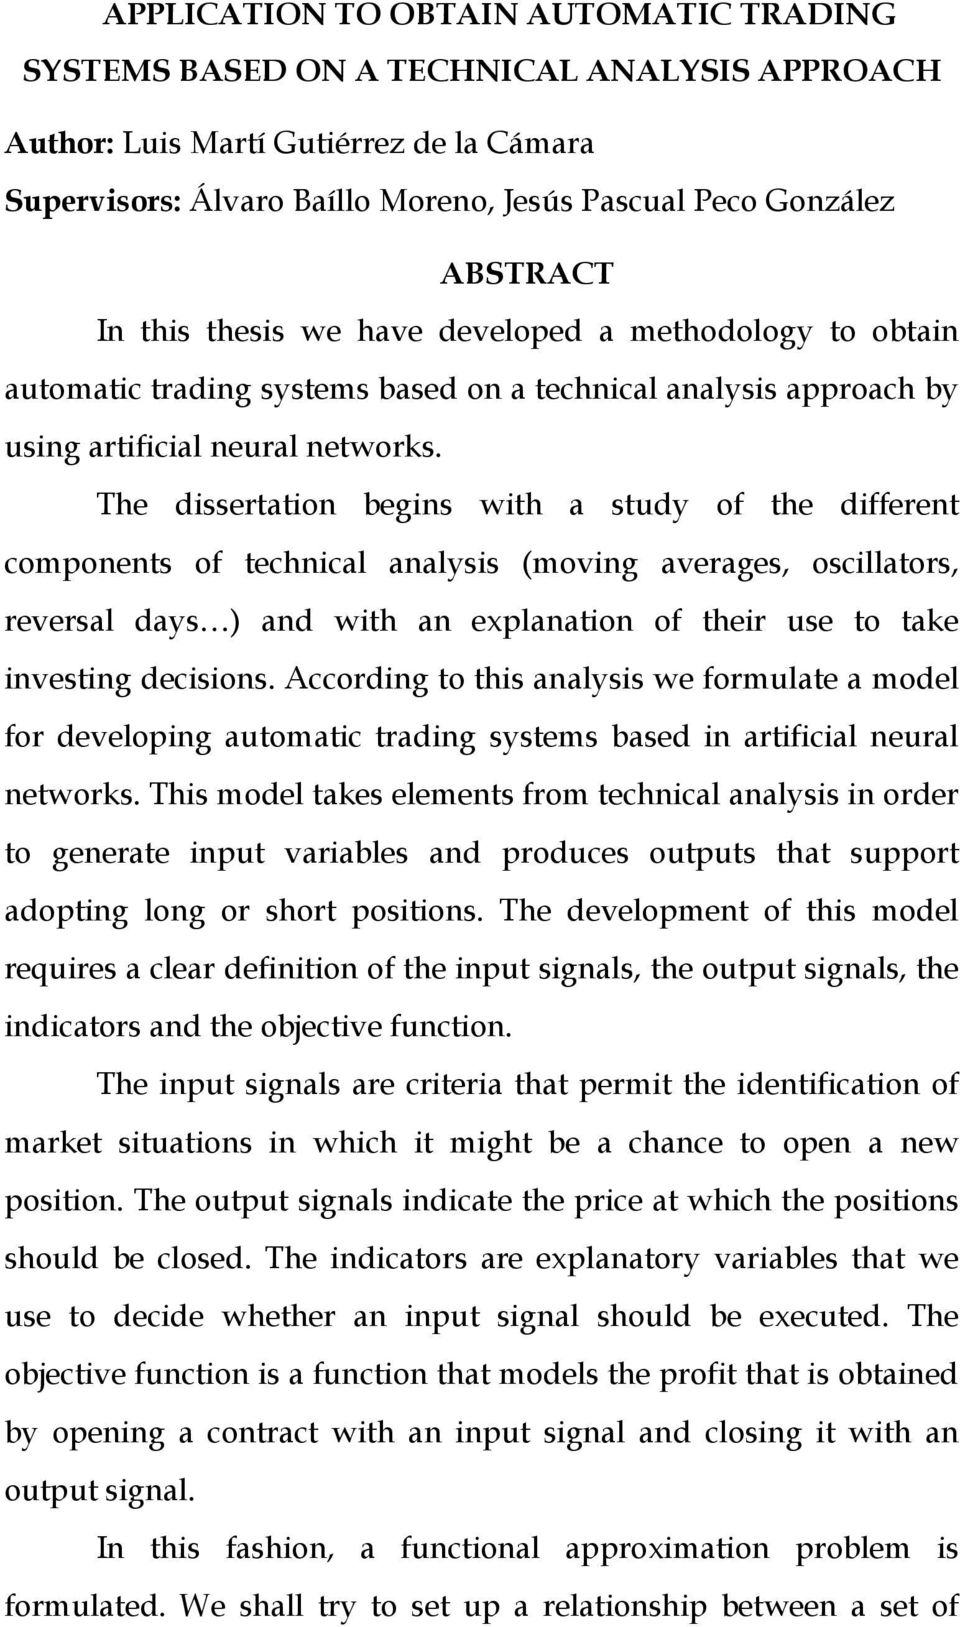 The dissertation begins with a study of the different components of technical analysis (moving averages, oscillators, reversal days ) and with an explanation of their use to take investing decisions.